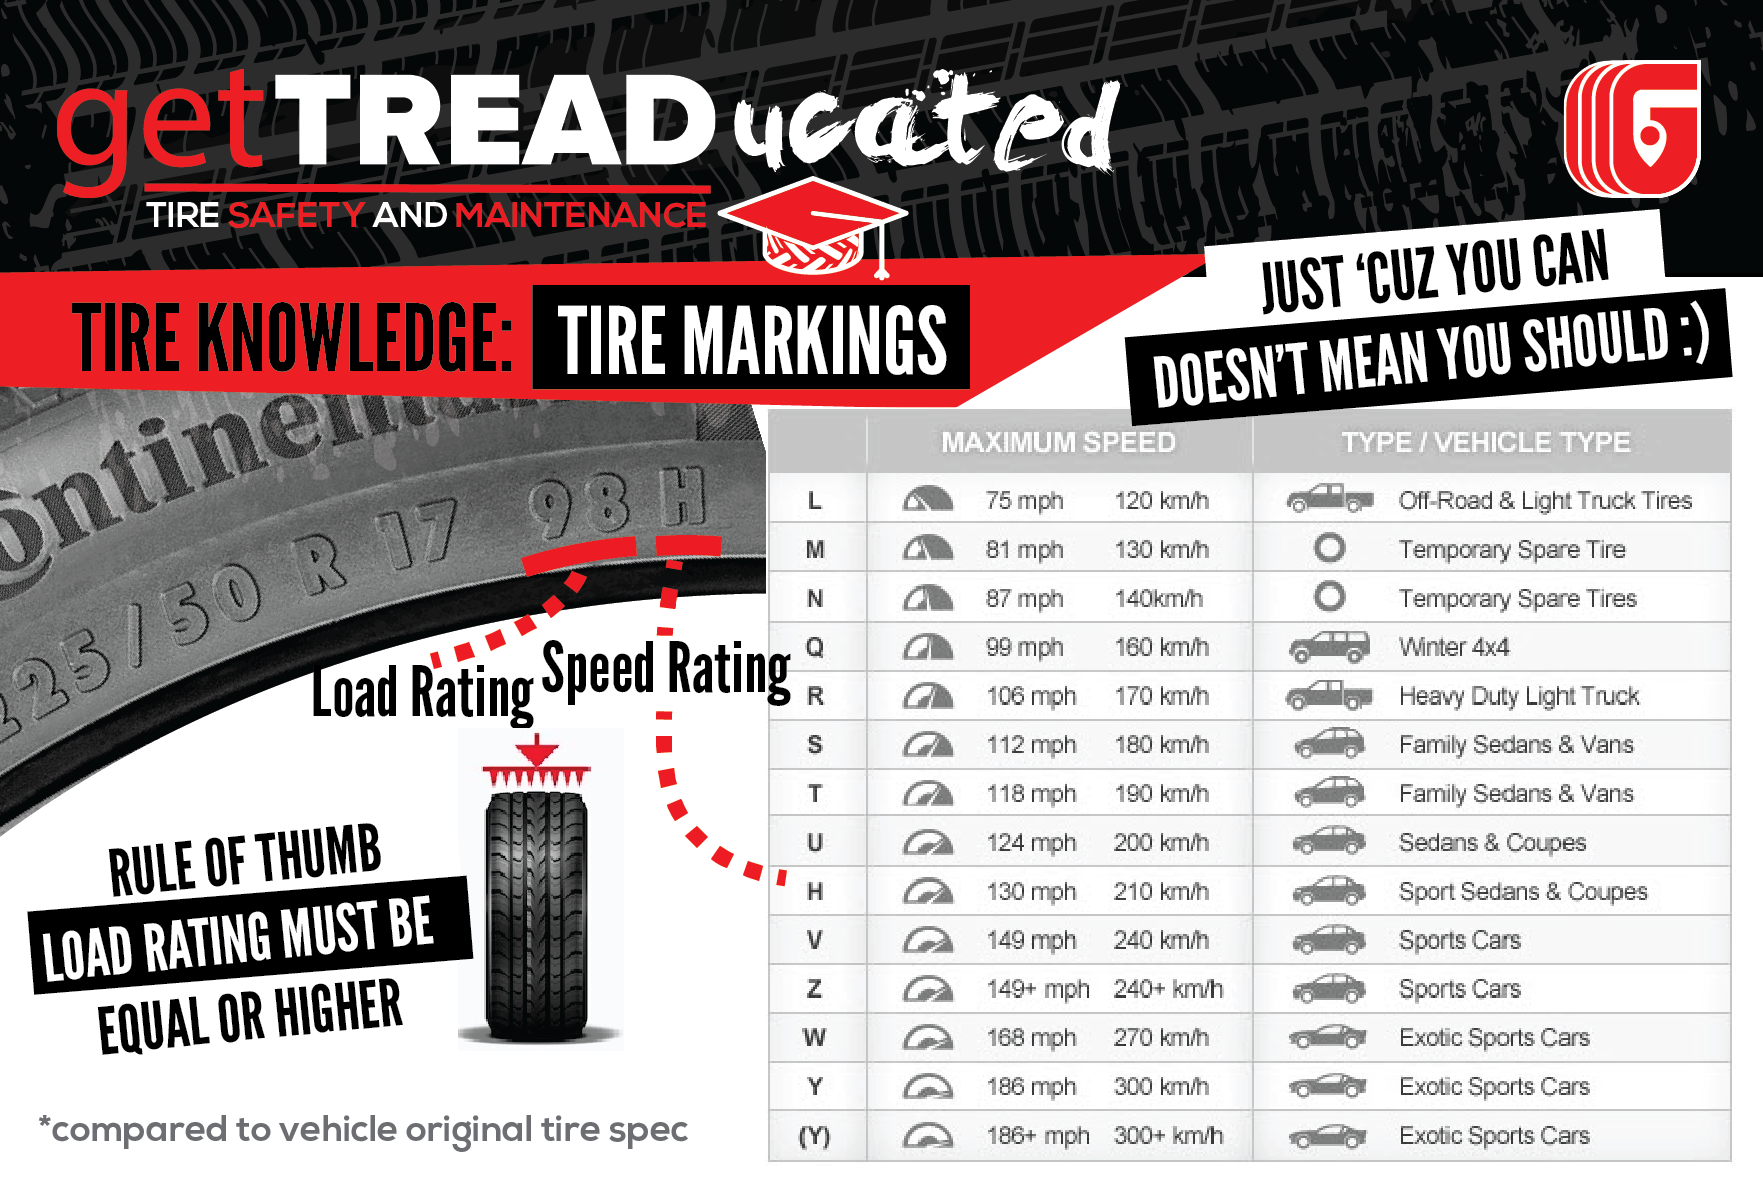 How to Read a Tire Part 2 of 2